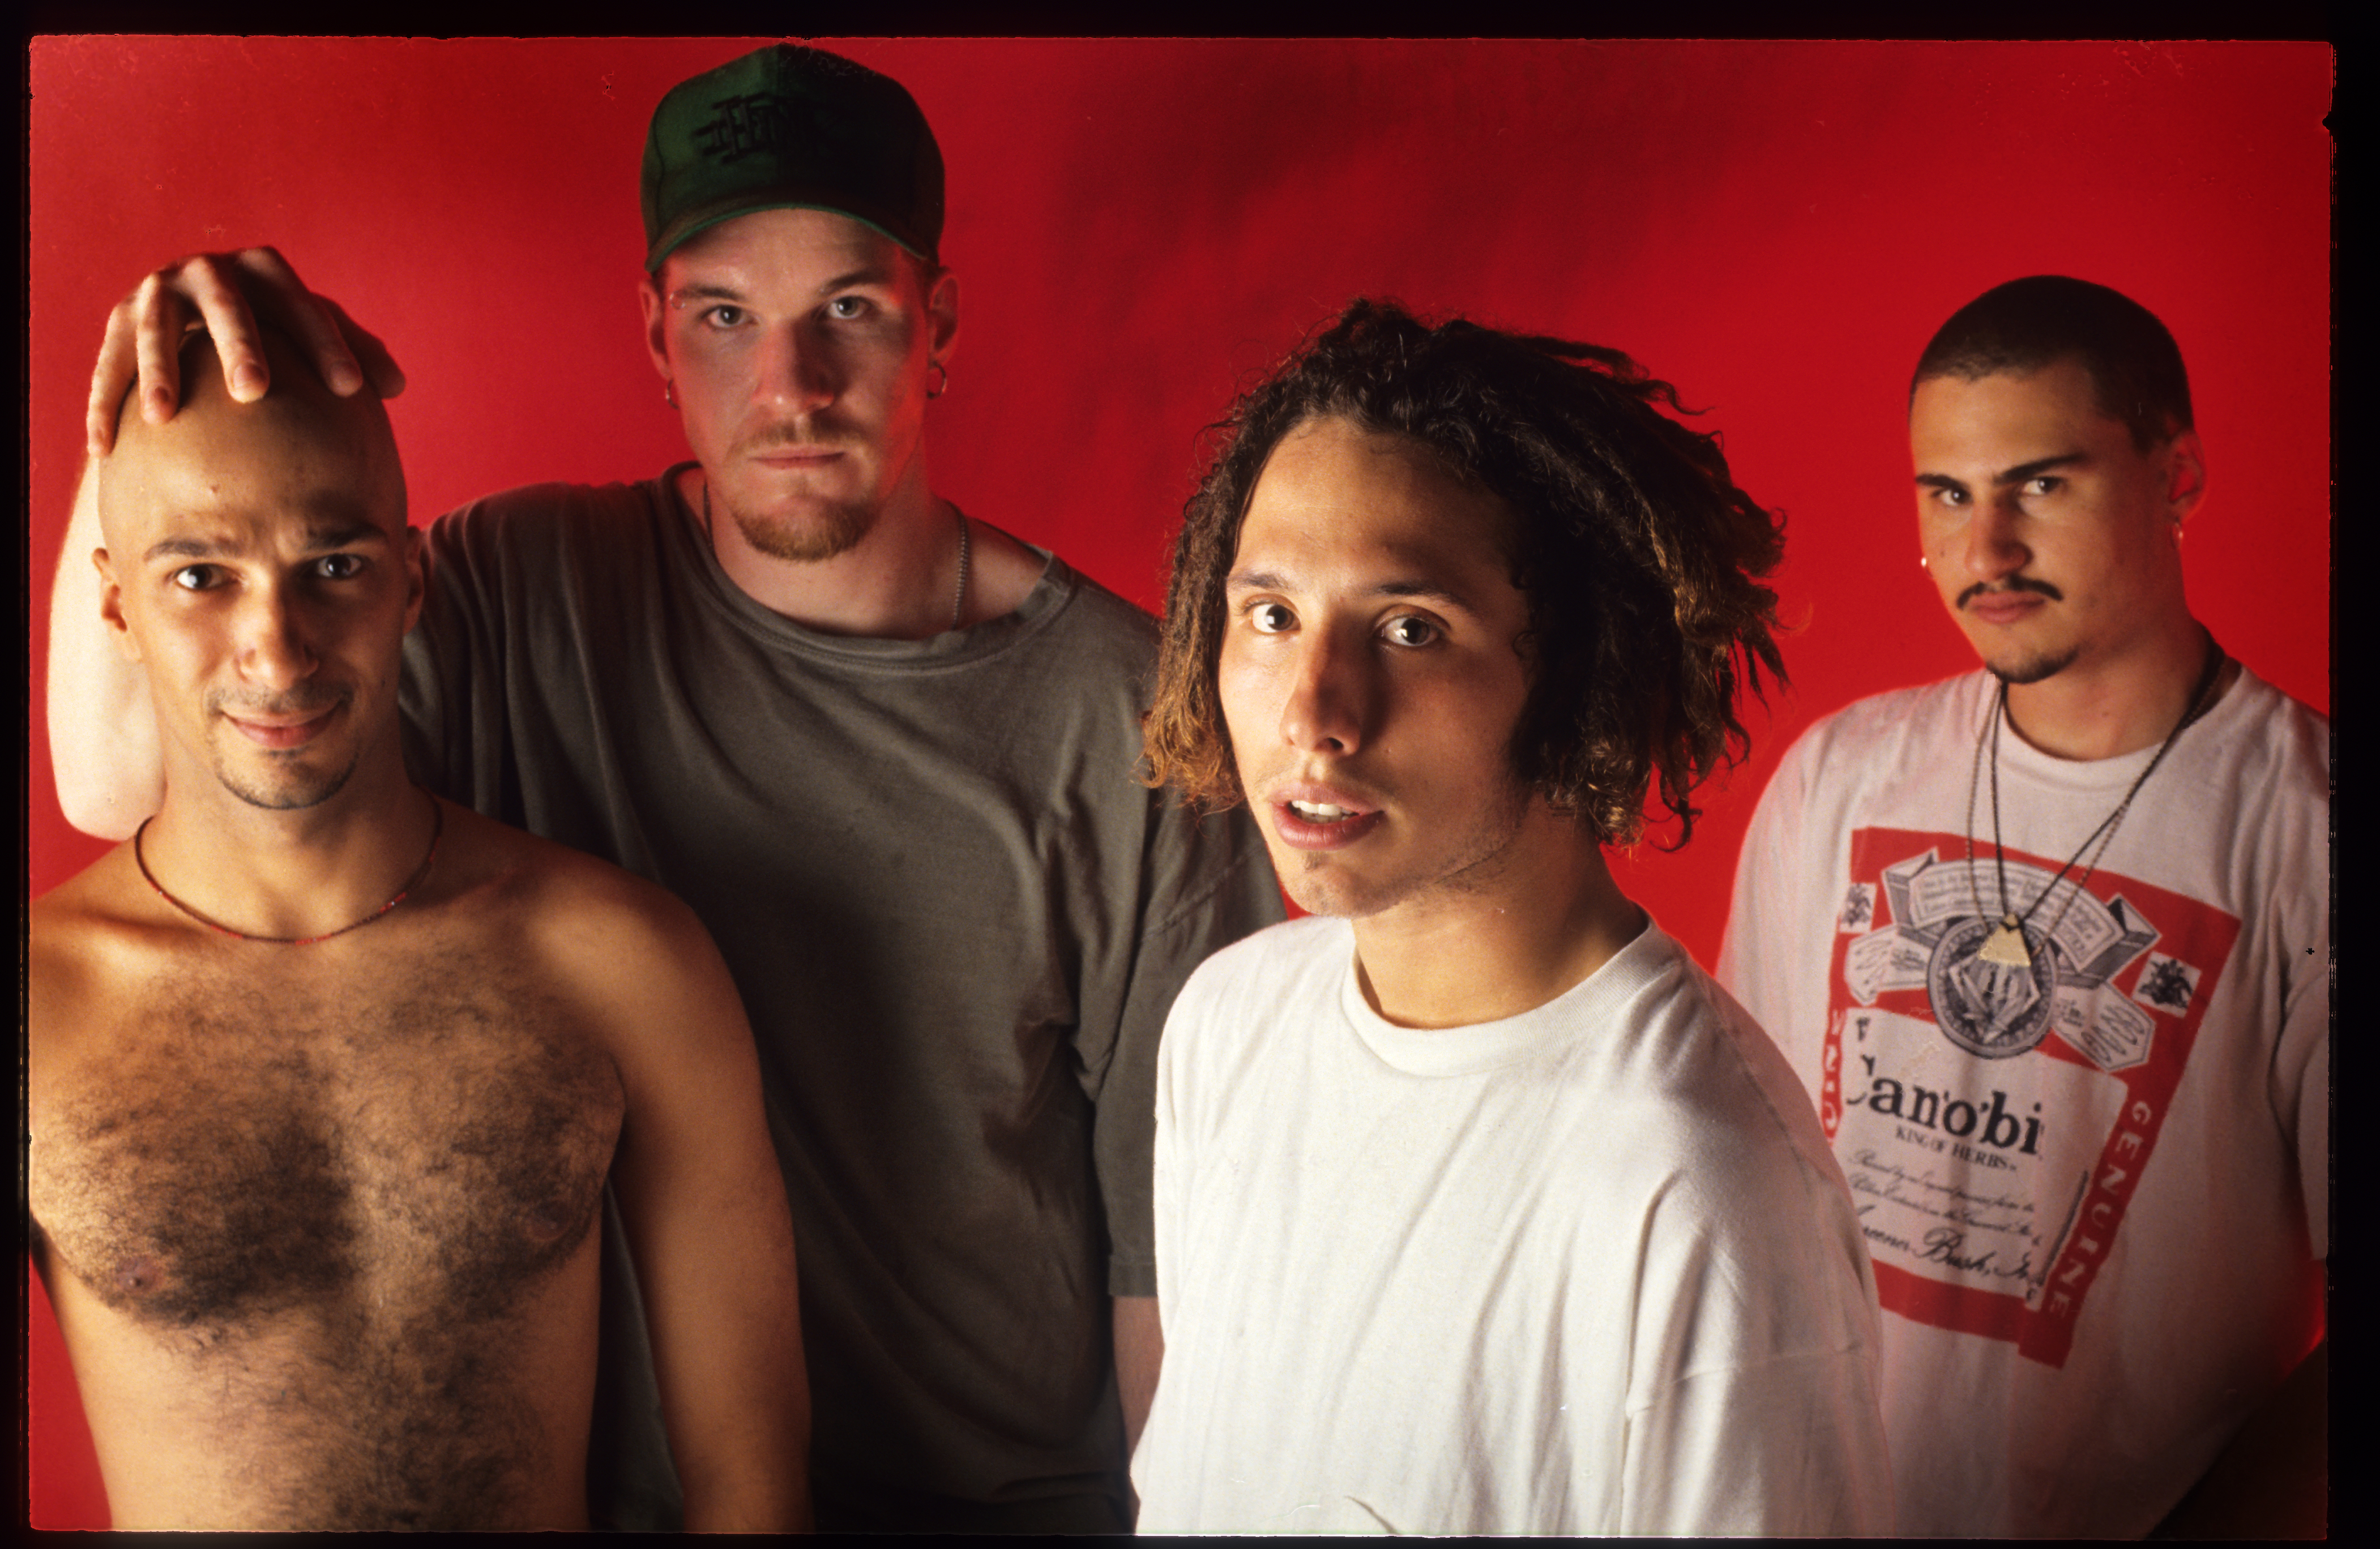 Rage against the machine naked picture 95